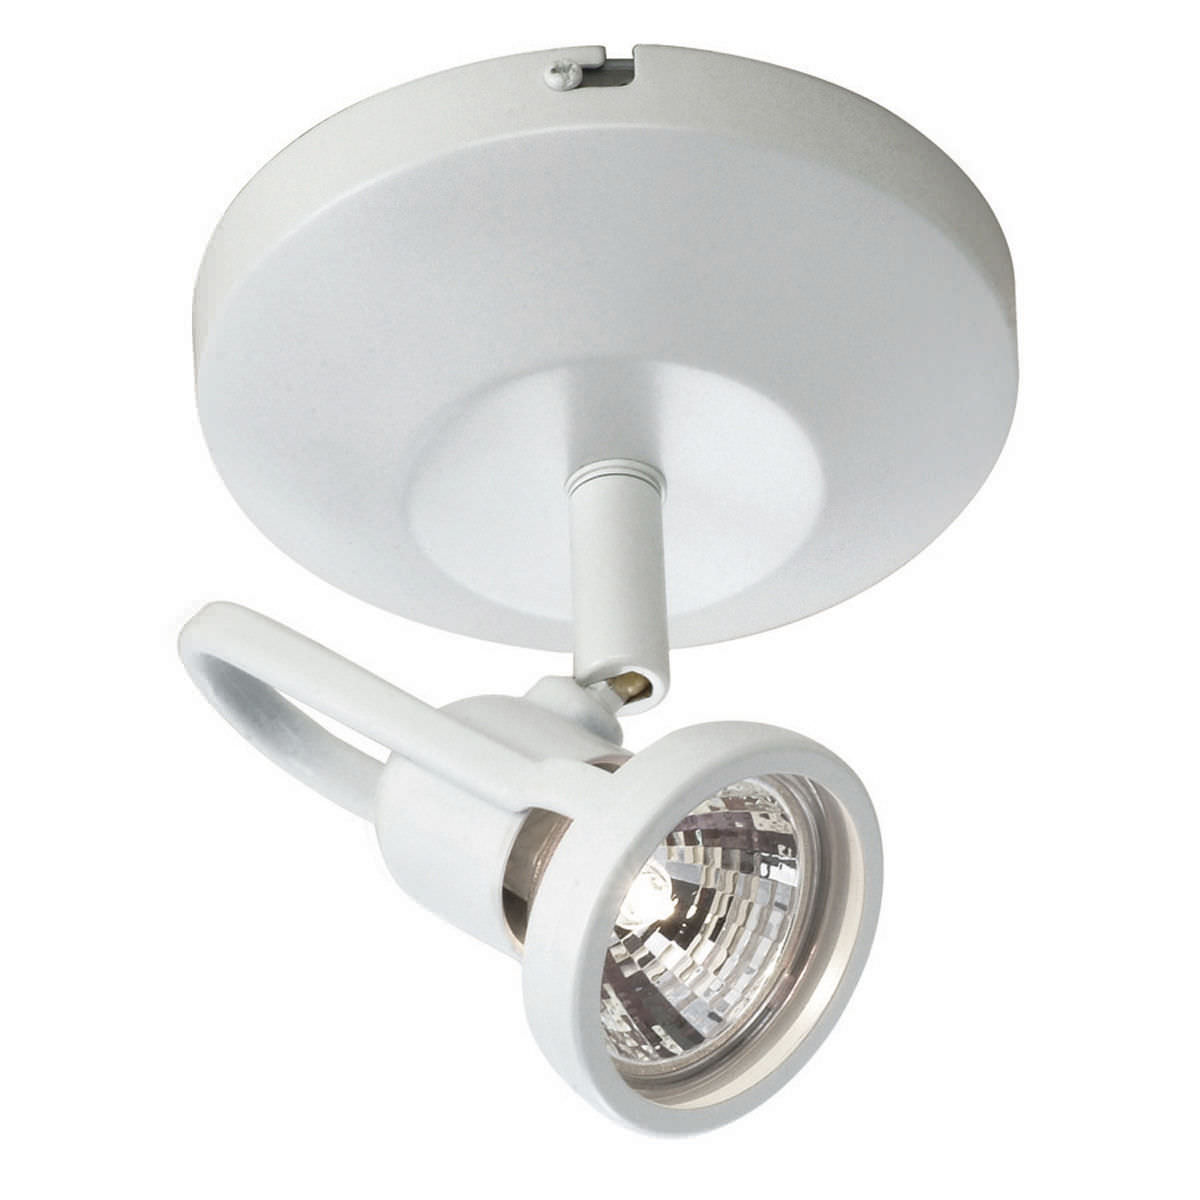 10 Reasons To Install Ceiling Mounted Spot Light Warisan